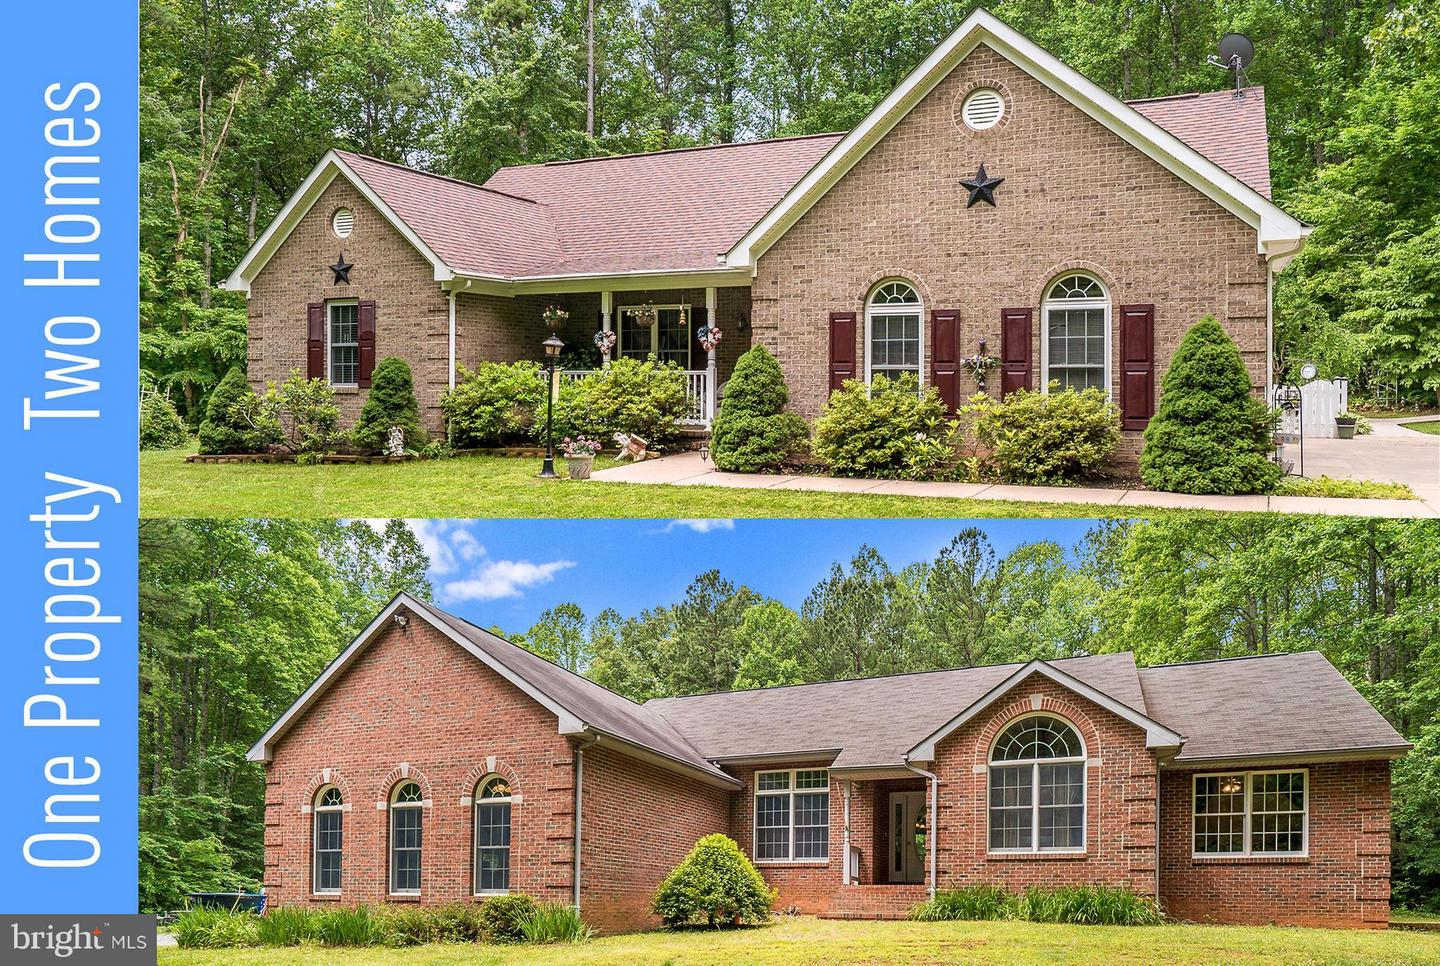 Single Family for Sale at 4300 Sumerduck Rd Sumerduck, Virginia 22742 United States